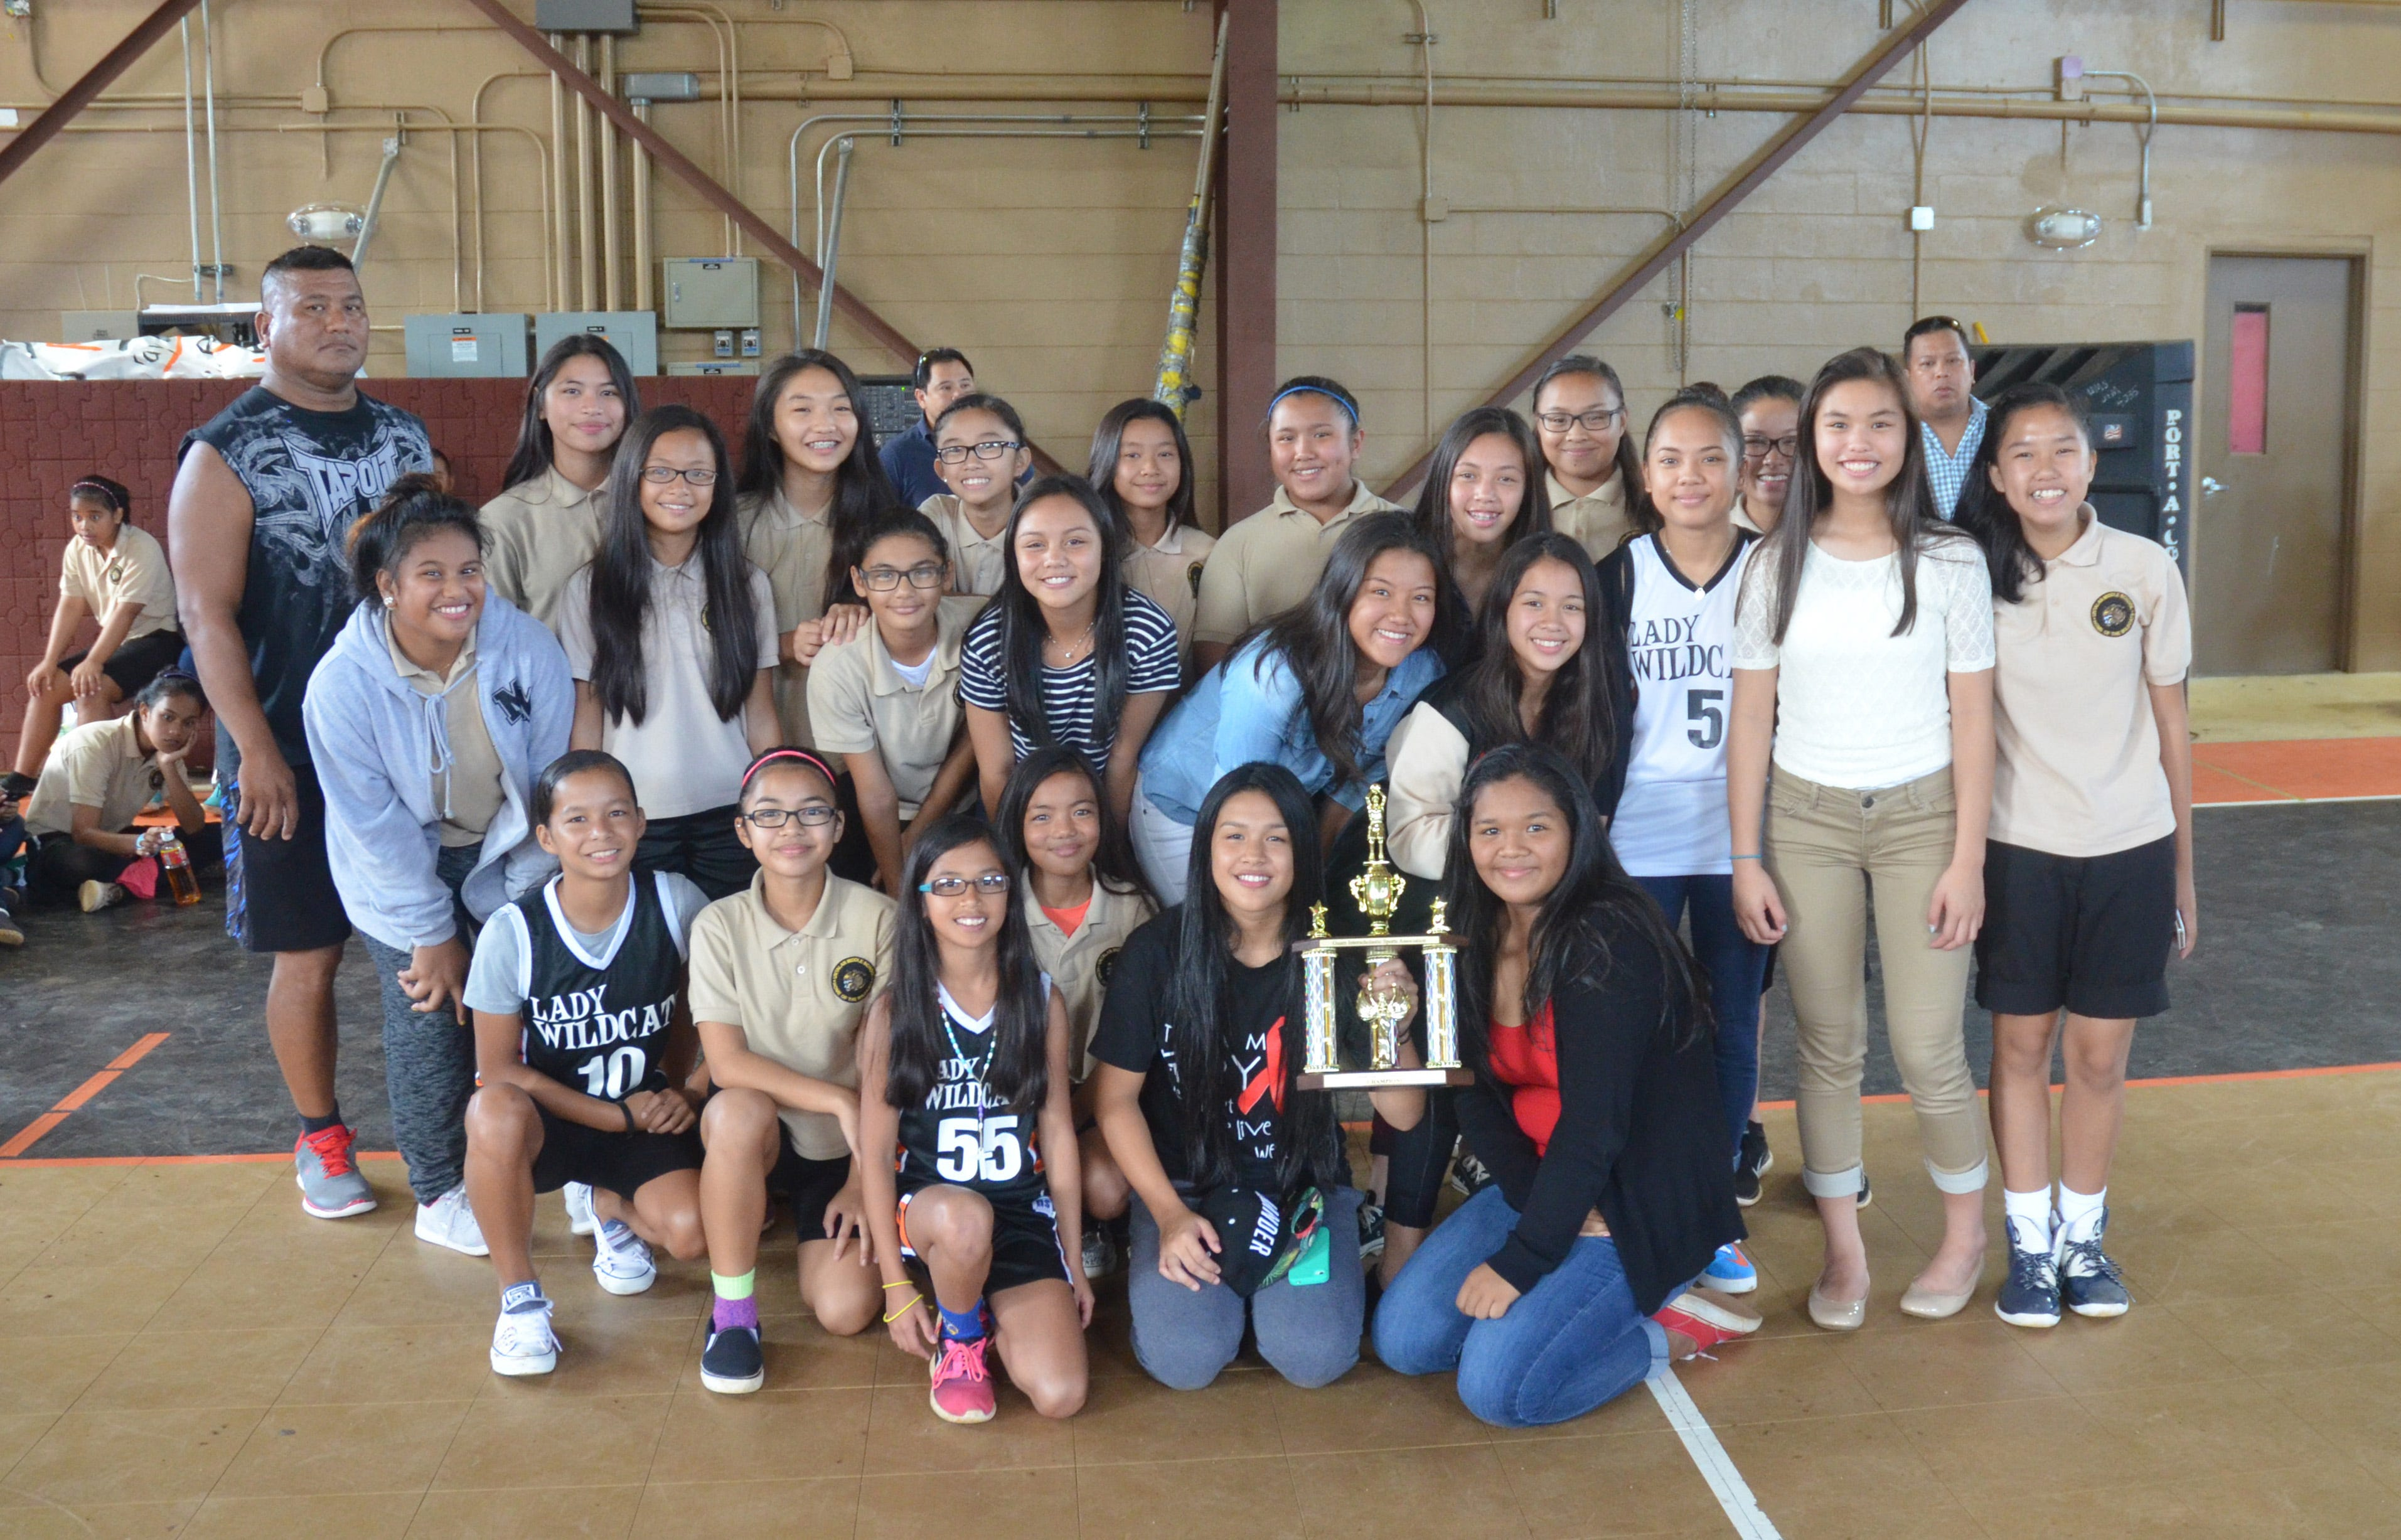 The Untalan Middle School Wildcats were presented with a trophy for winning the Guam Interscholastic Sports Association Girls' Basketball League championship in their gym on Friday, June 5, 2015. The Warriors were co-champions with the Benavente Middle School Roadrunners. Untalan won eight total championships during the 2014-2015 school year, including all six girls' sports, and were the GISA overall champions.Grant Wieman/Pacific Daily News/gwieman@guampdn.com